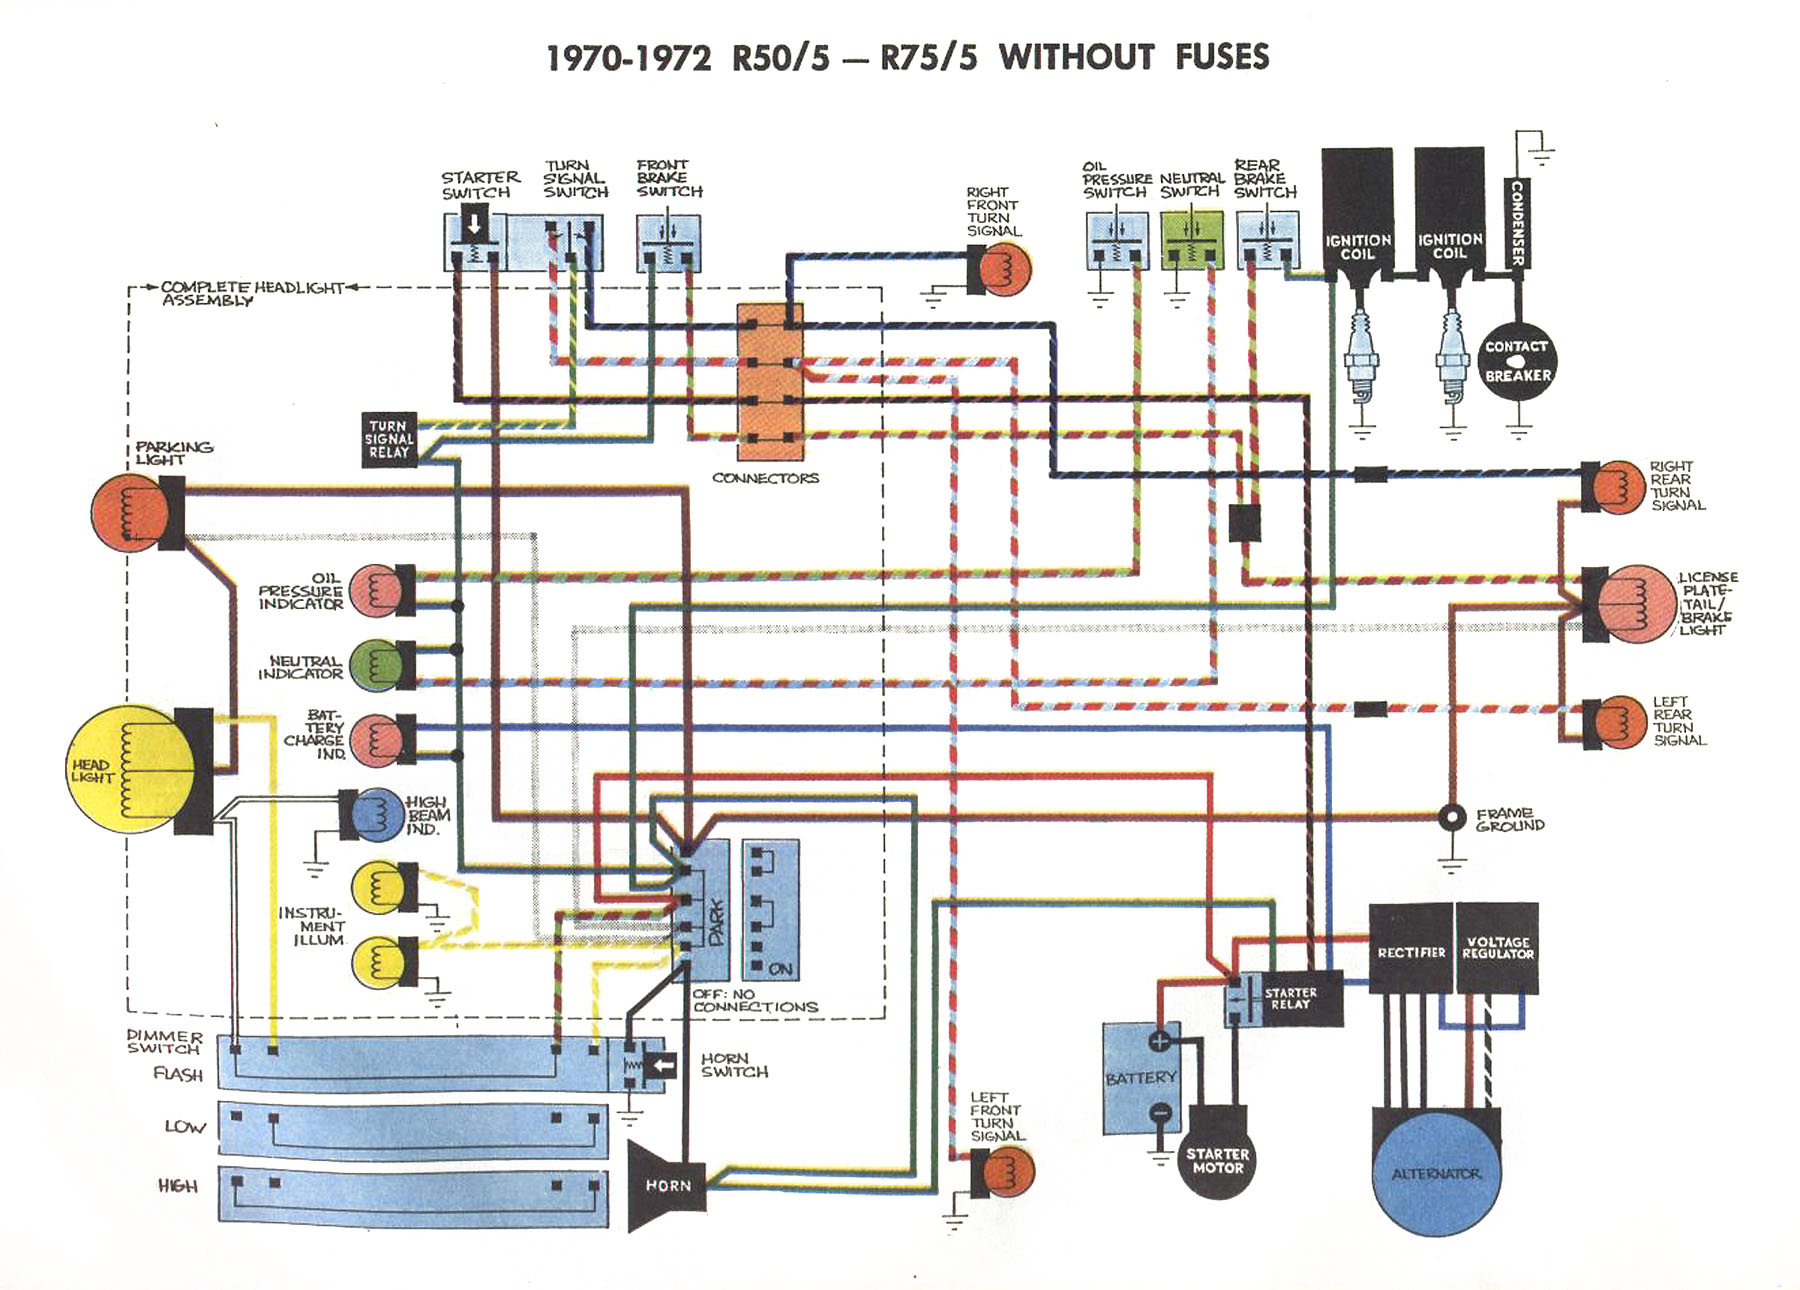 1971 bmw r75 5 wiring diagram